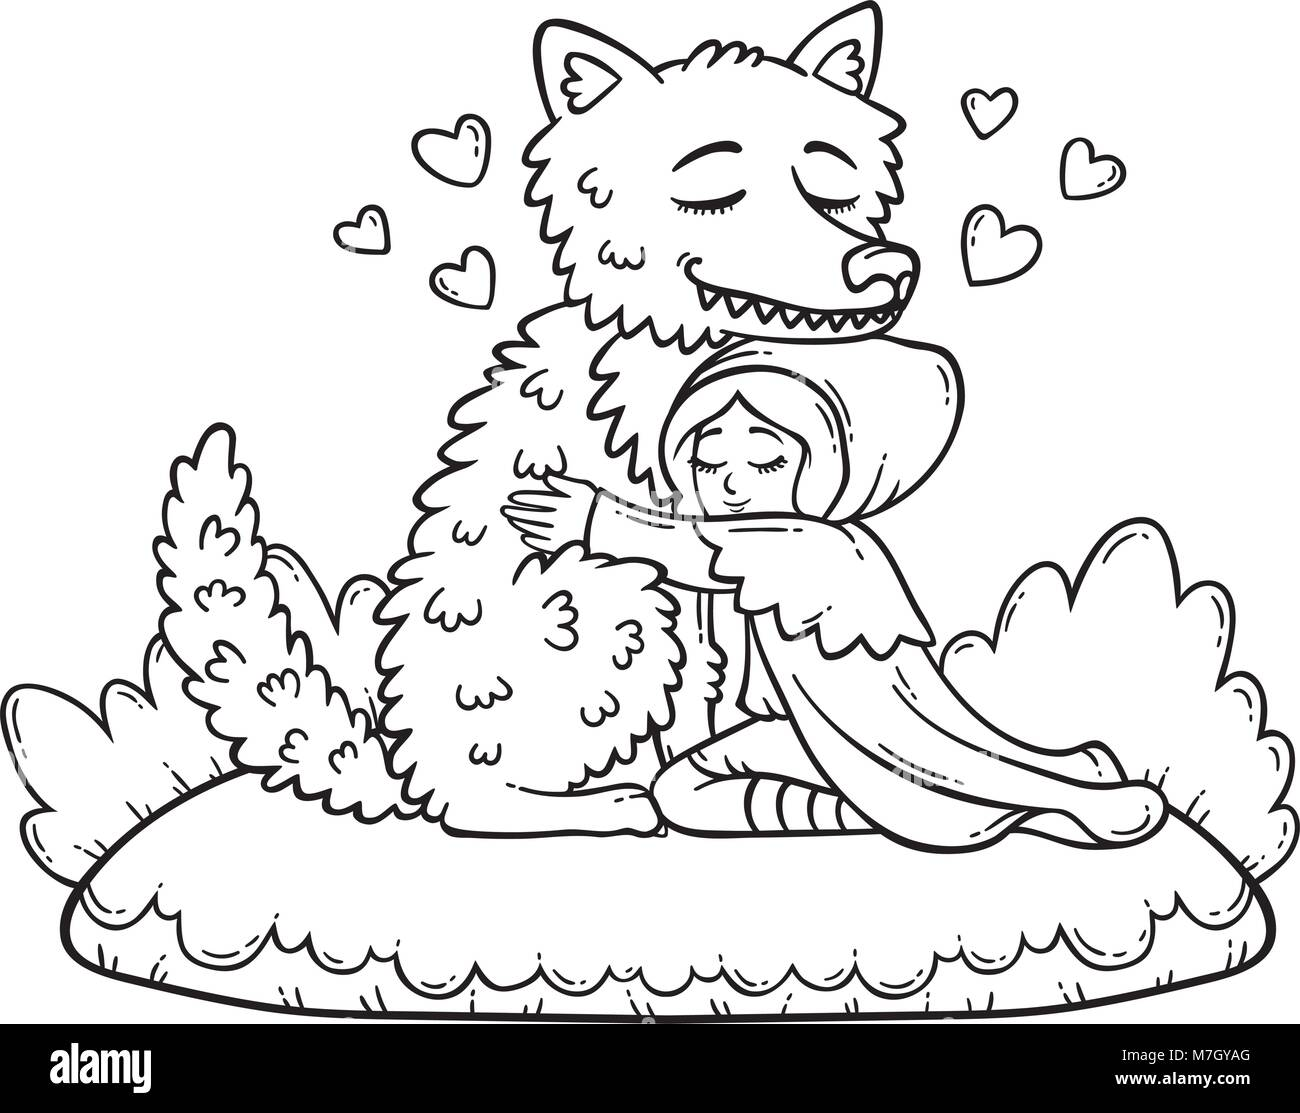 Big Bad Wolf Coloring Pages | Coloring pages, Super coloring pages ... | 1113x1300